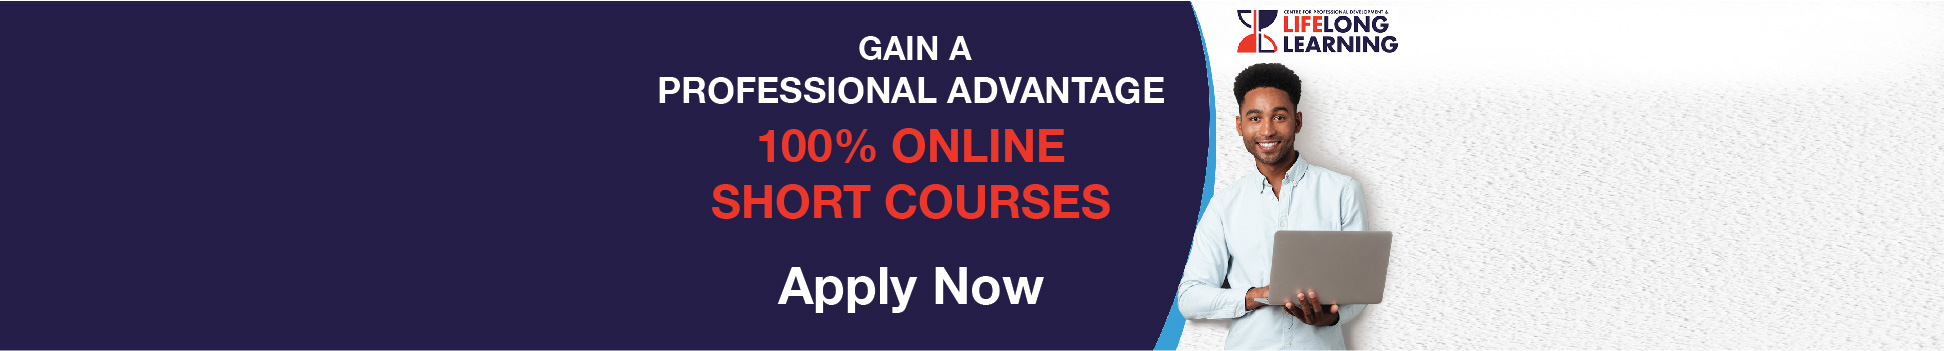 100% Online Professional Development Short Courses